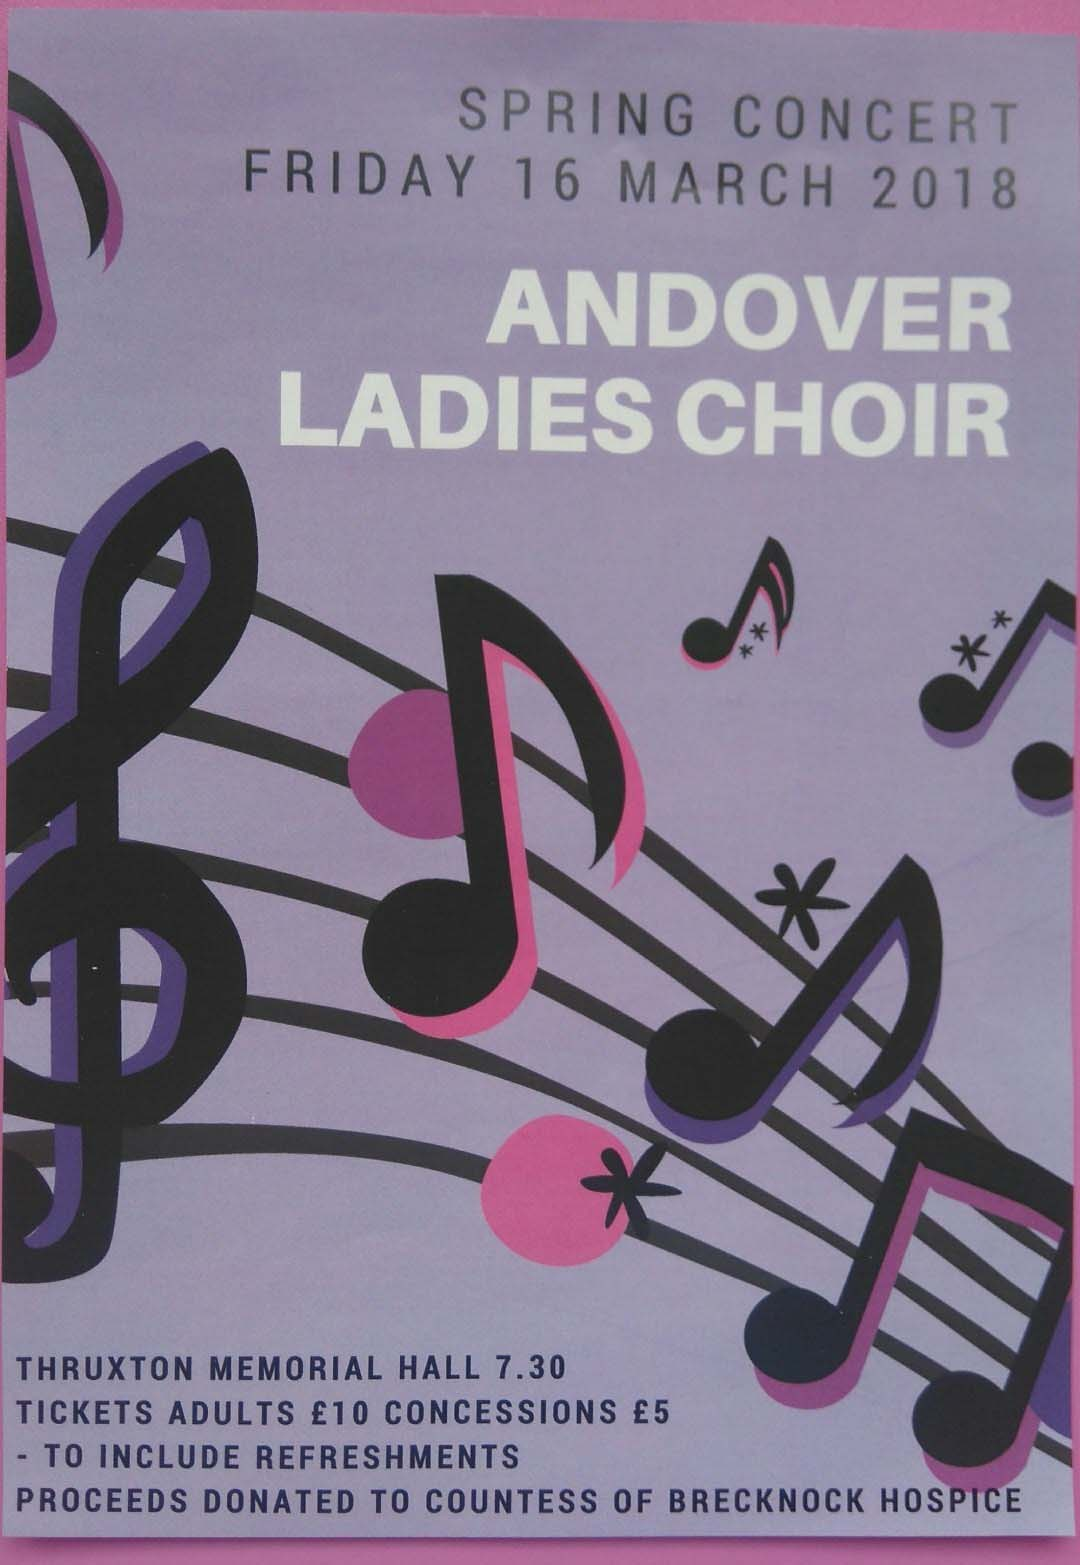 Andover Ladies Choir Spring Concert